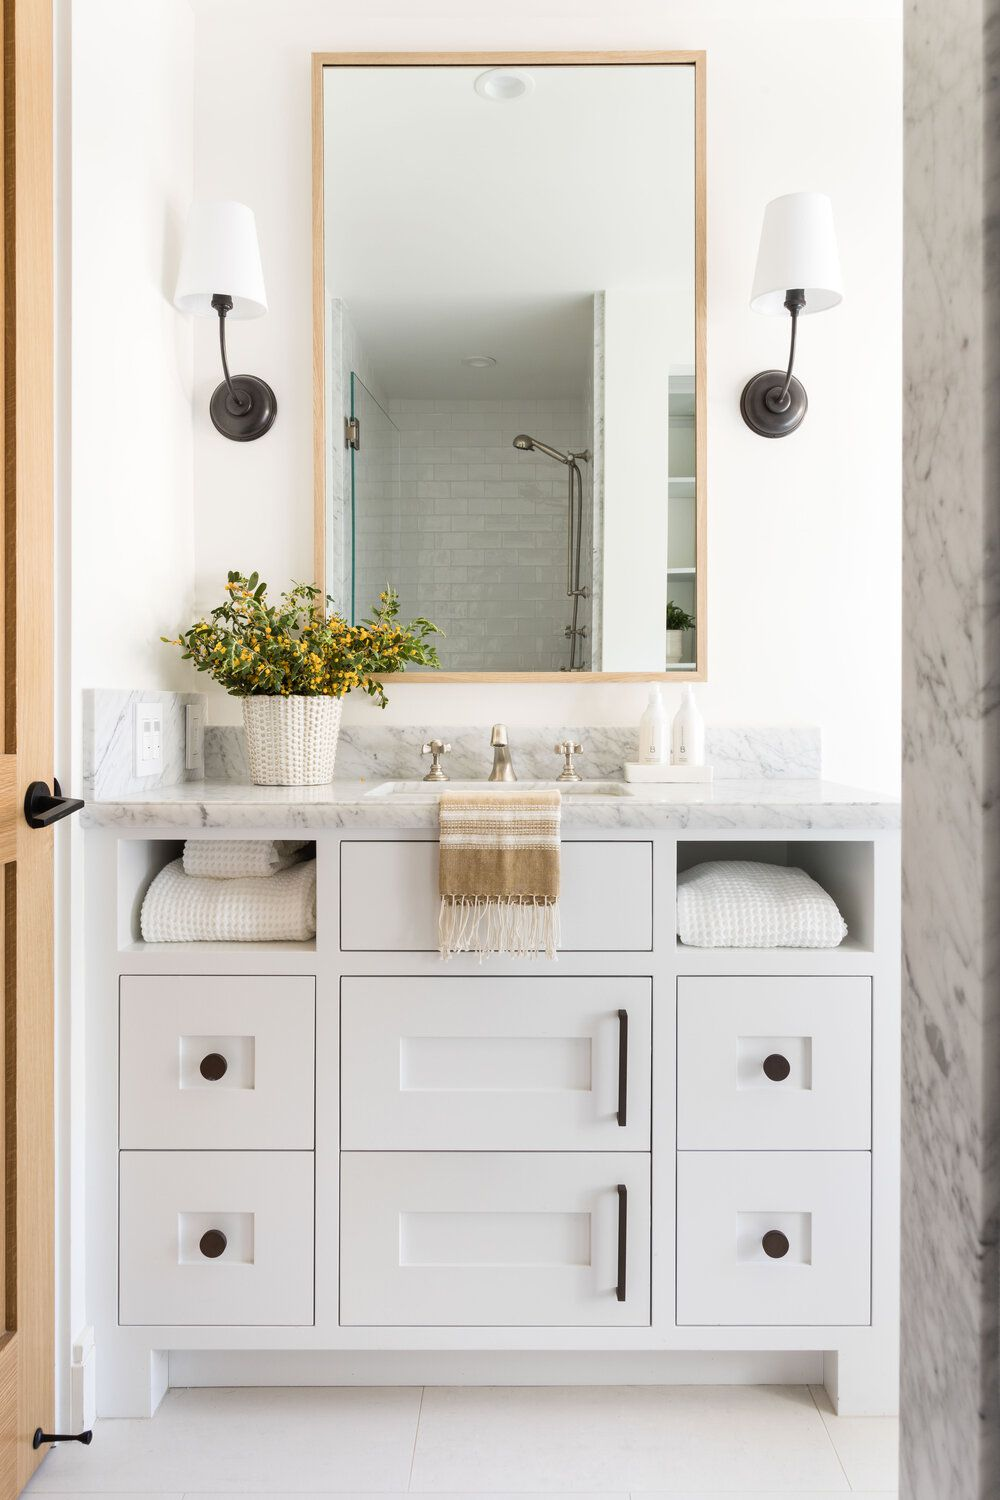 A small primary bathroom packed with small drawers and cabinets